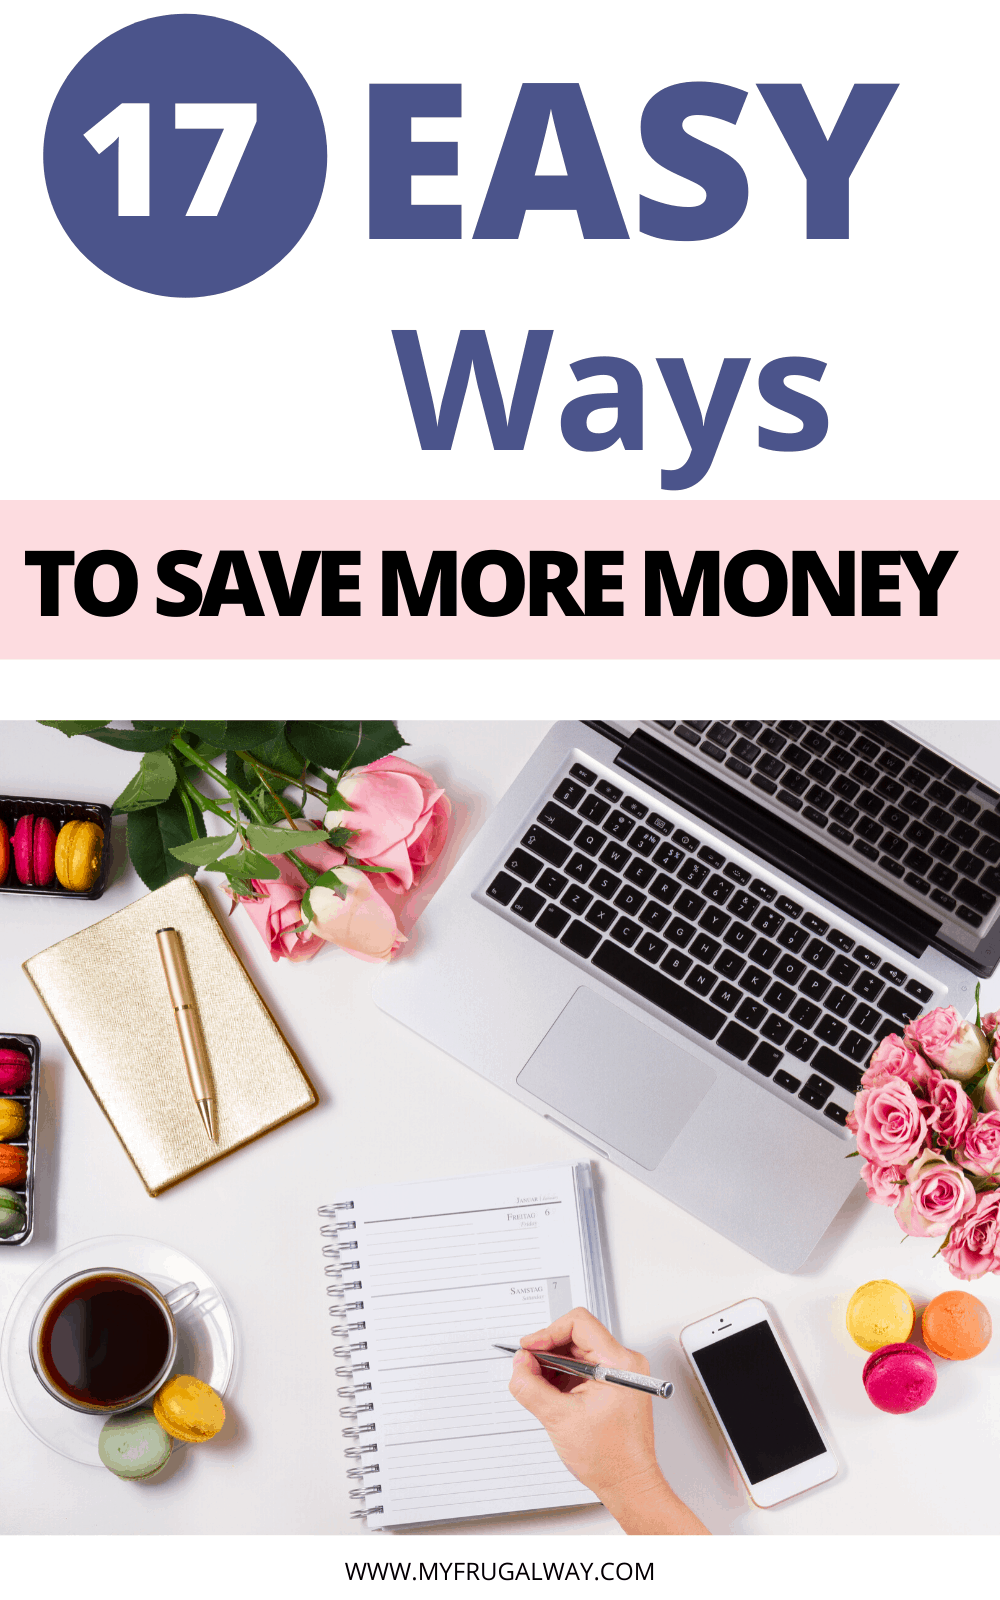 Are you struggling financially and looking for easy money saving tips to help you save more money while living paycheck to paycheck. Learn how to save money on a low income with these 17 genius tips. #finances #frugalliving #money #savemoney